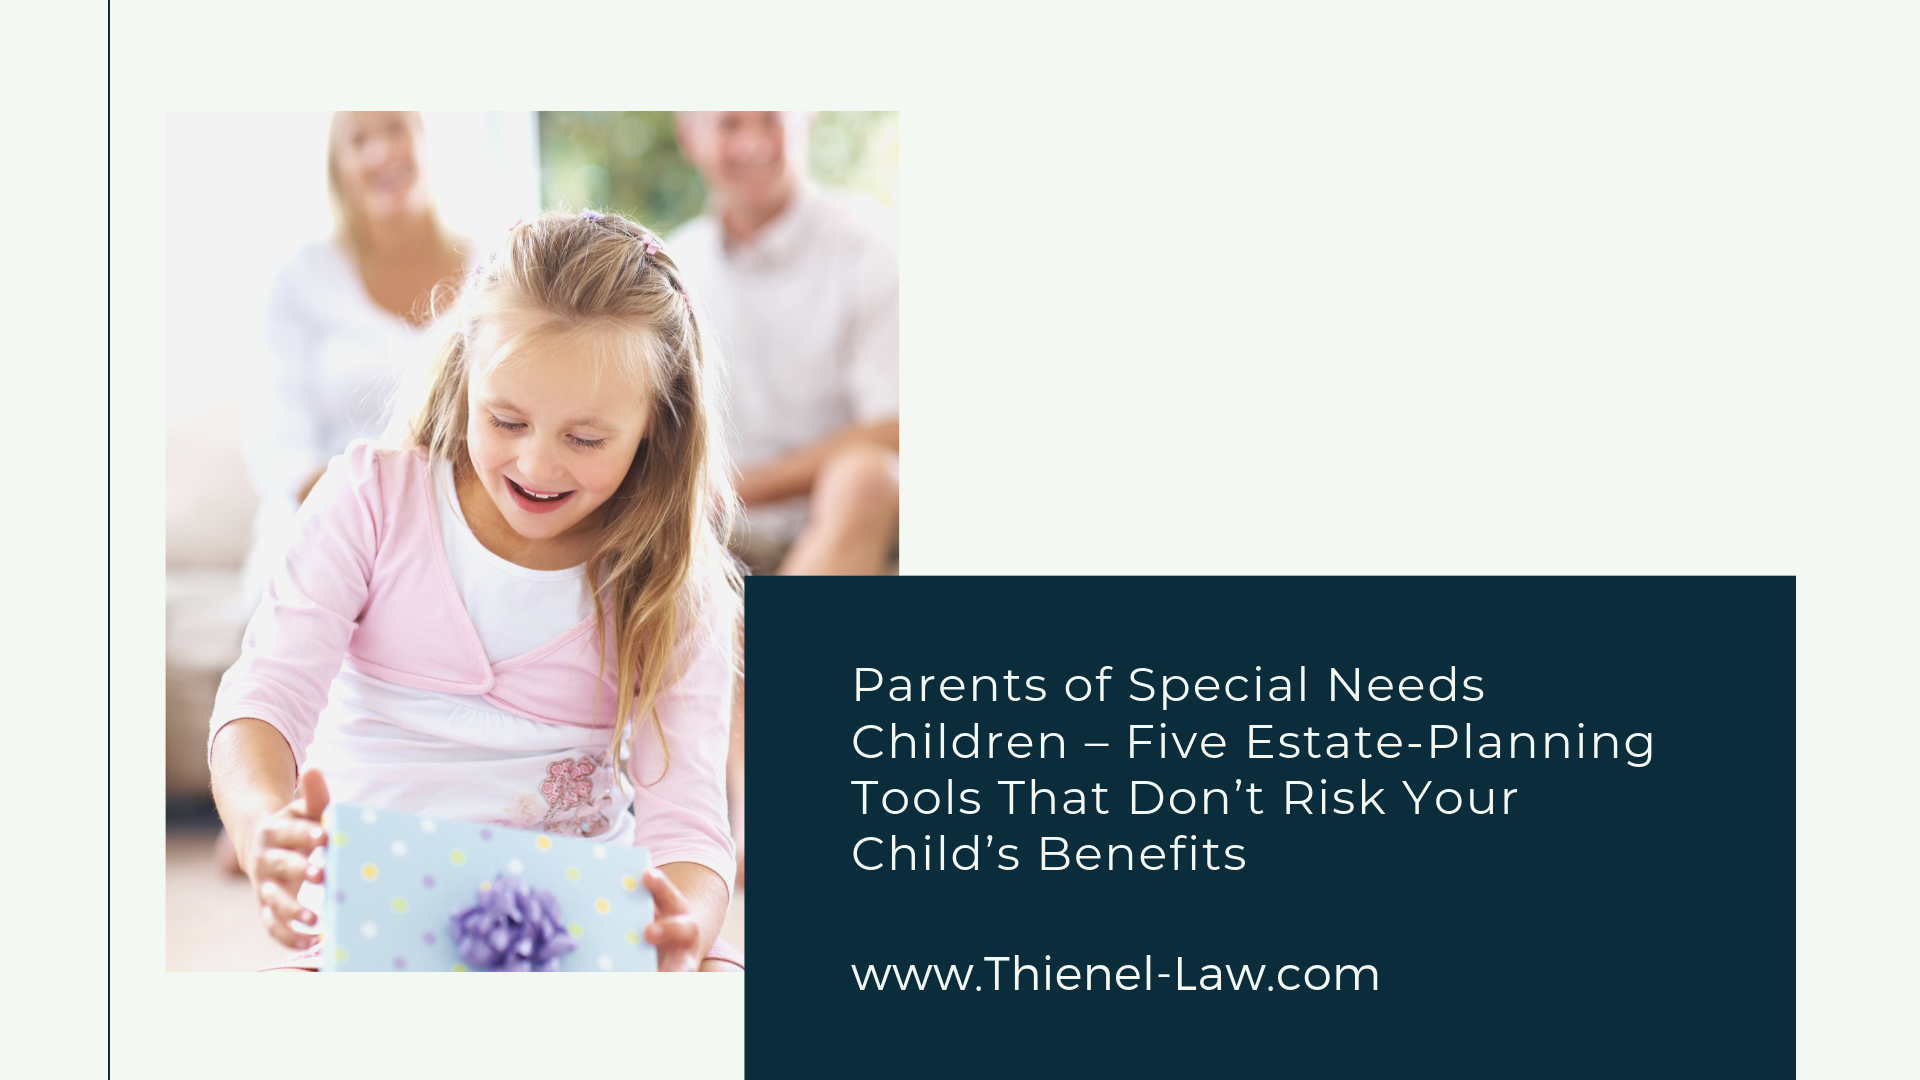 5 Estate-Planning Tools That Don't Risk Your Child's Benefits.png